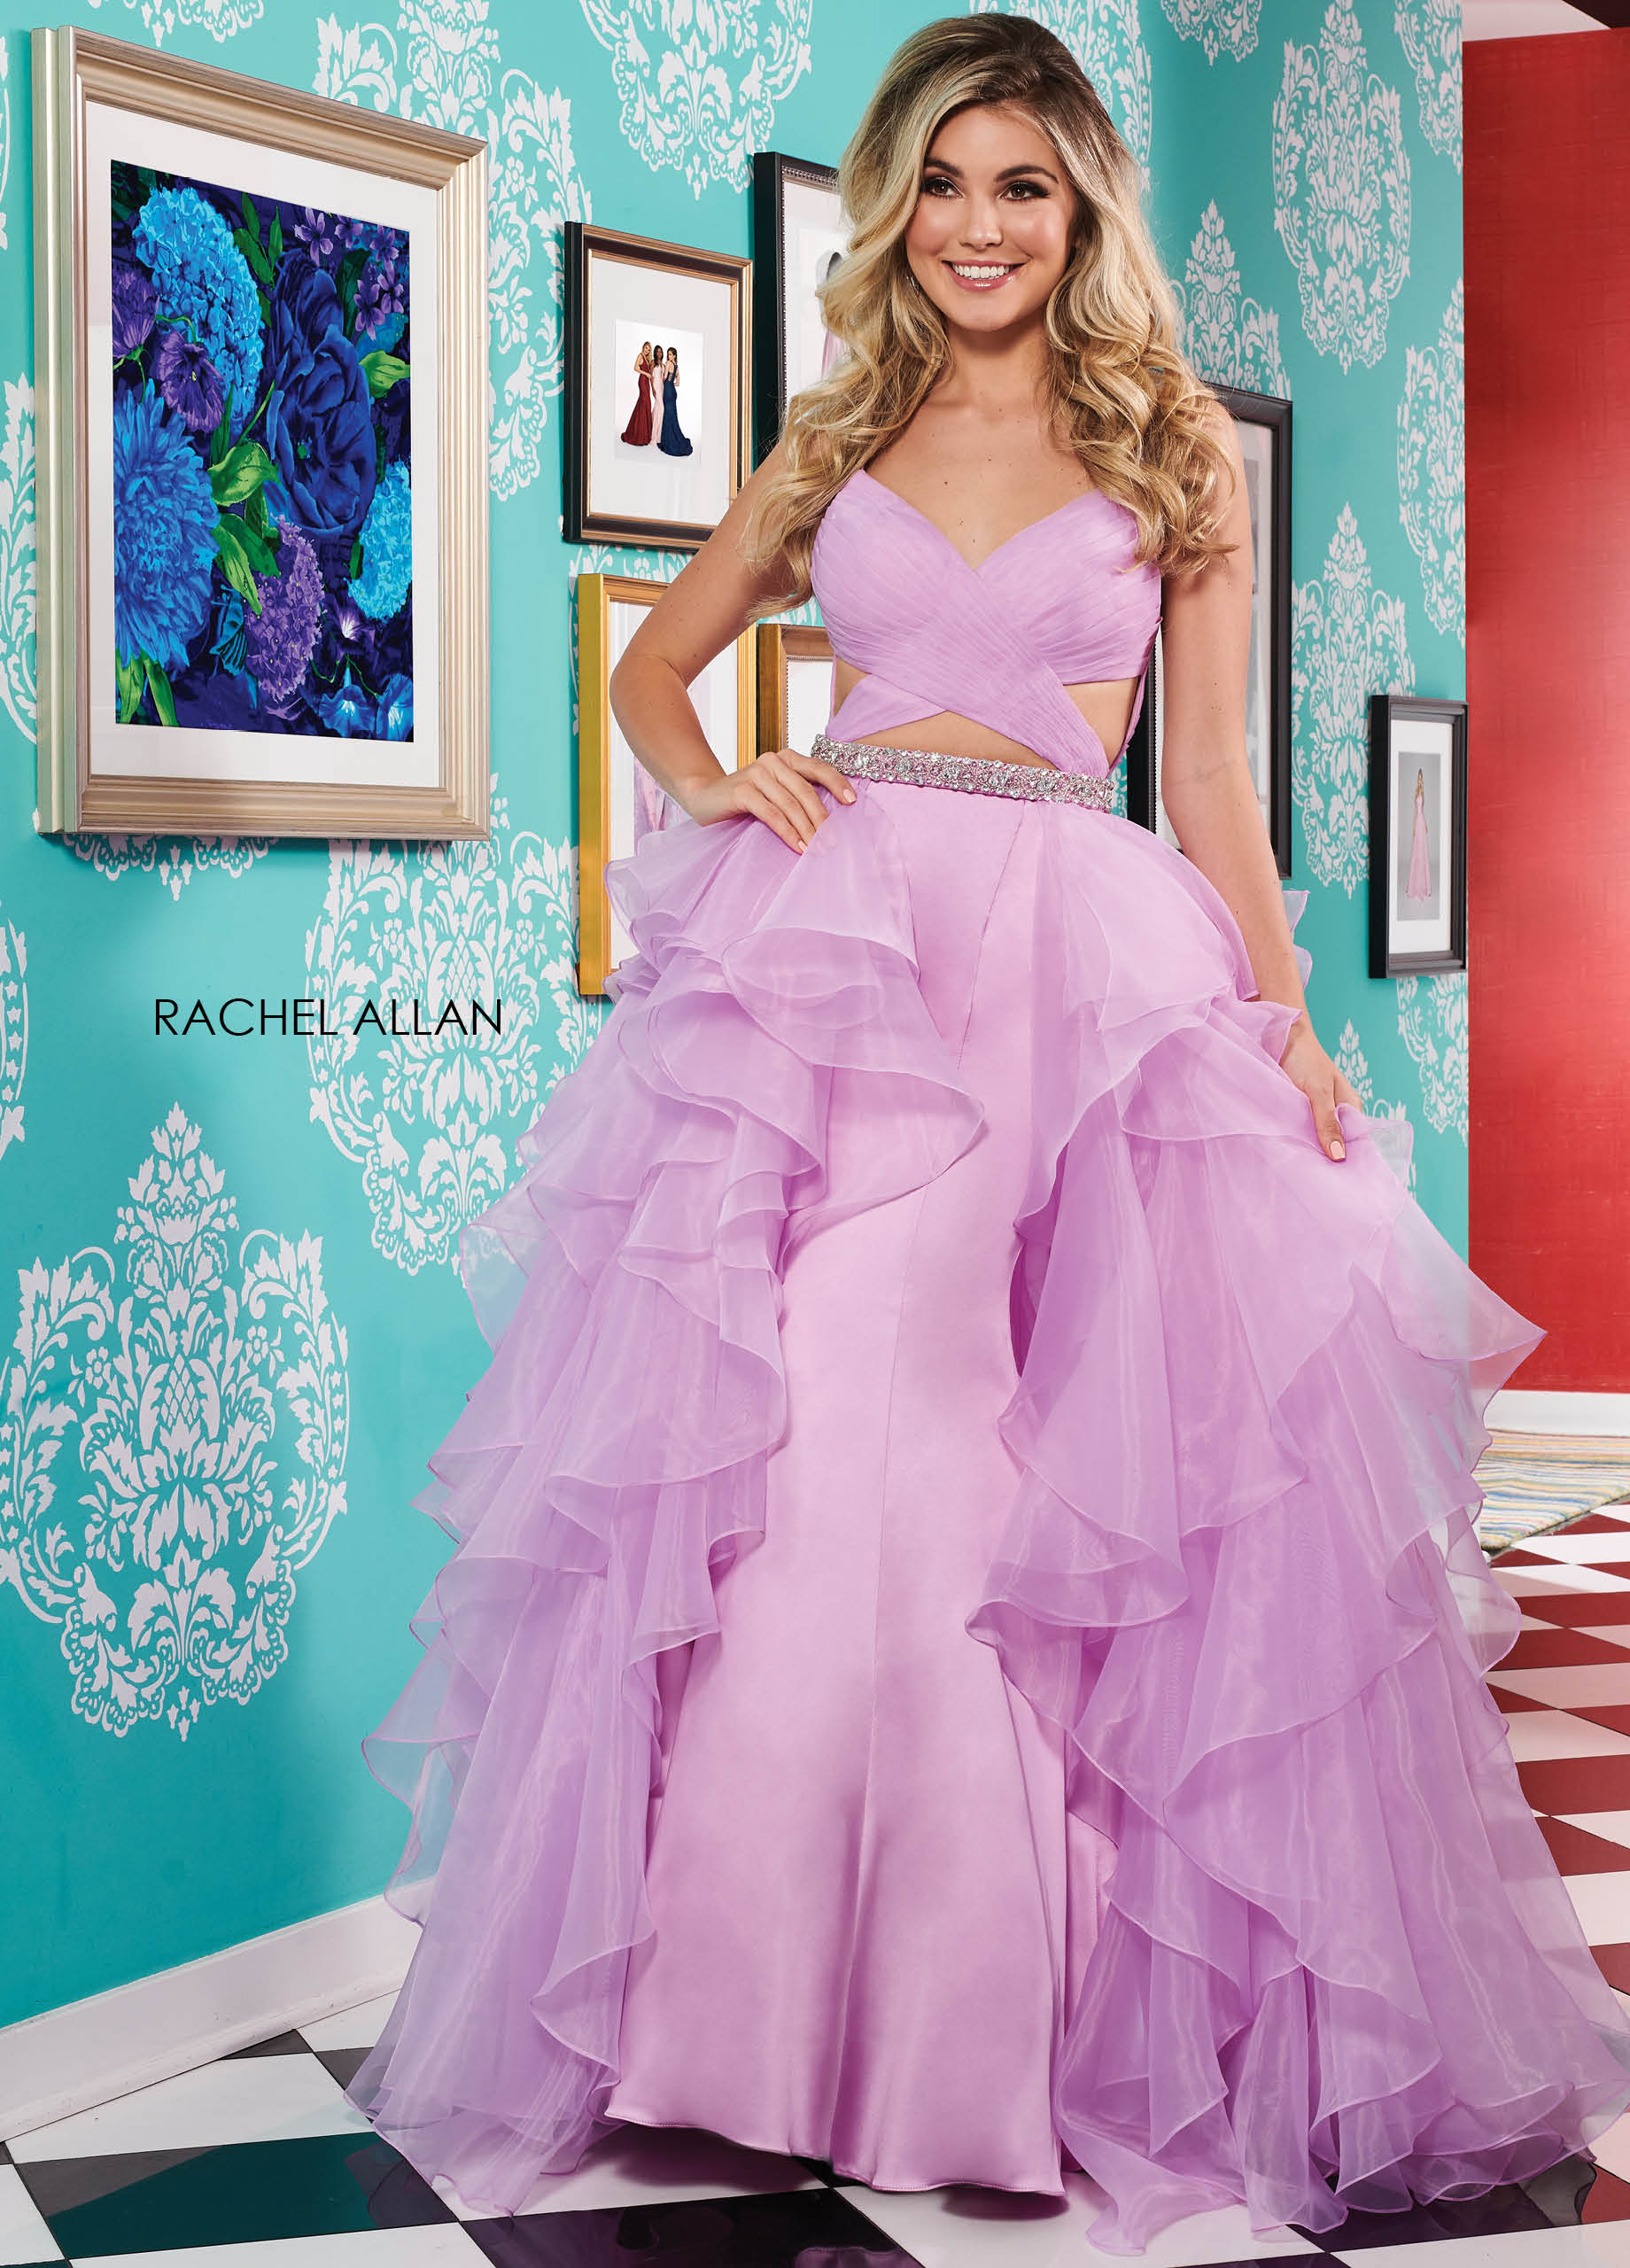 V-Neck Fit & Flare Prom Dresses in Purple Color